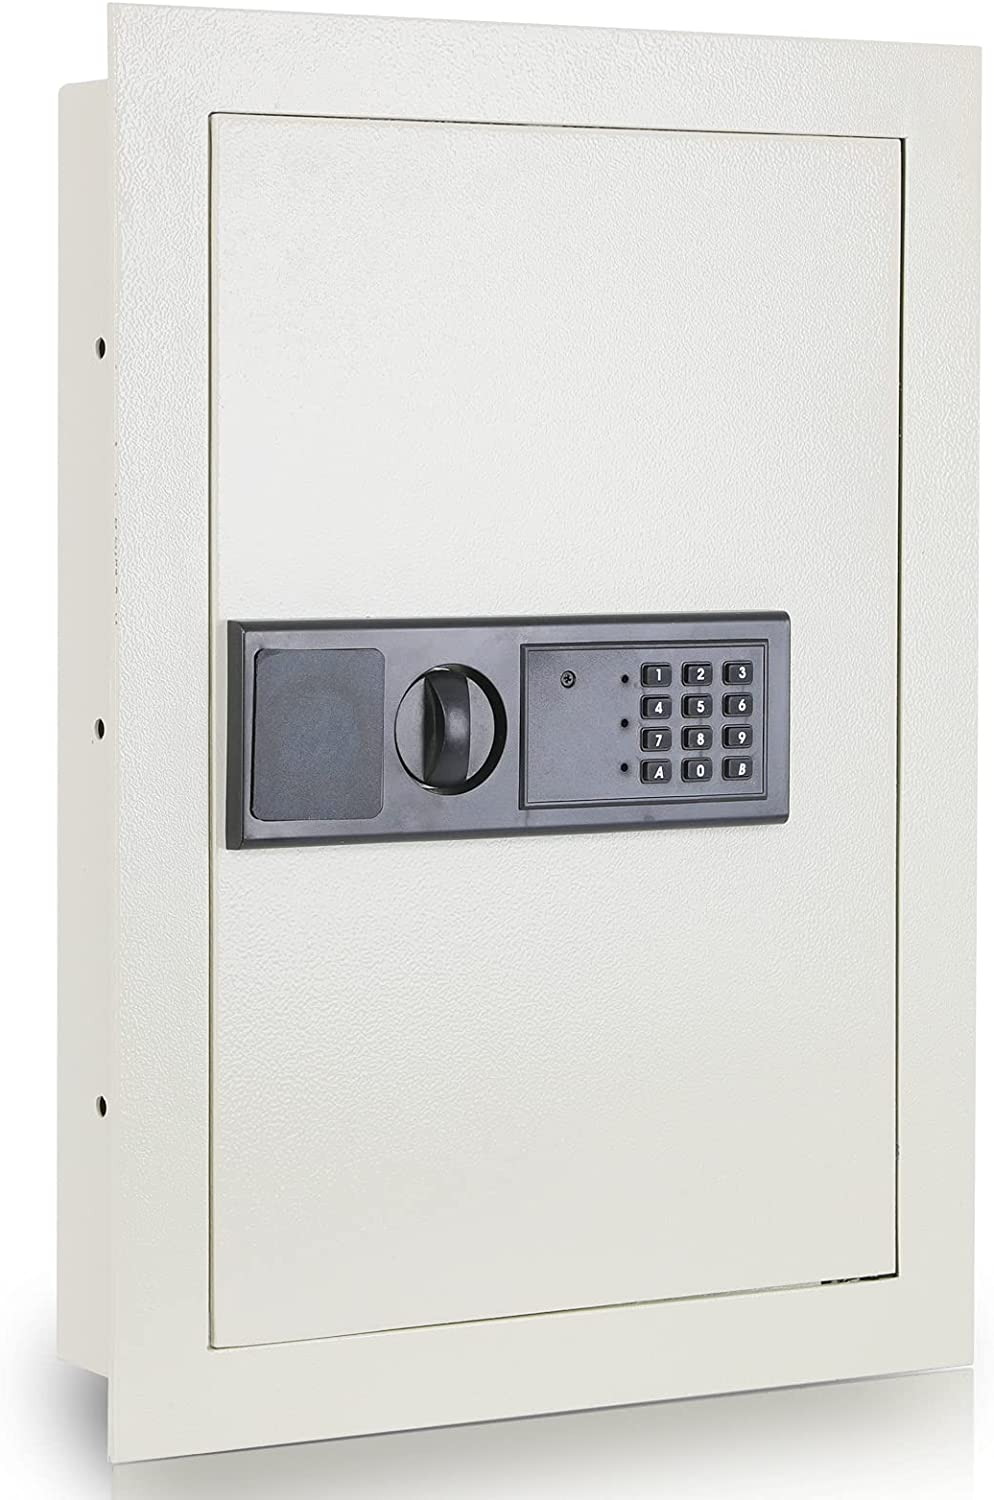 xydled Flat Wall Hidden Safe Security Box with Digital Electronic Lock, Wall Safe for Home Security, in Wall Gun Safe and Money Safe,WS003(Gray)